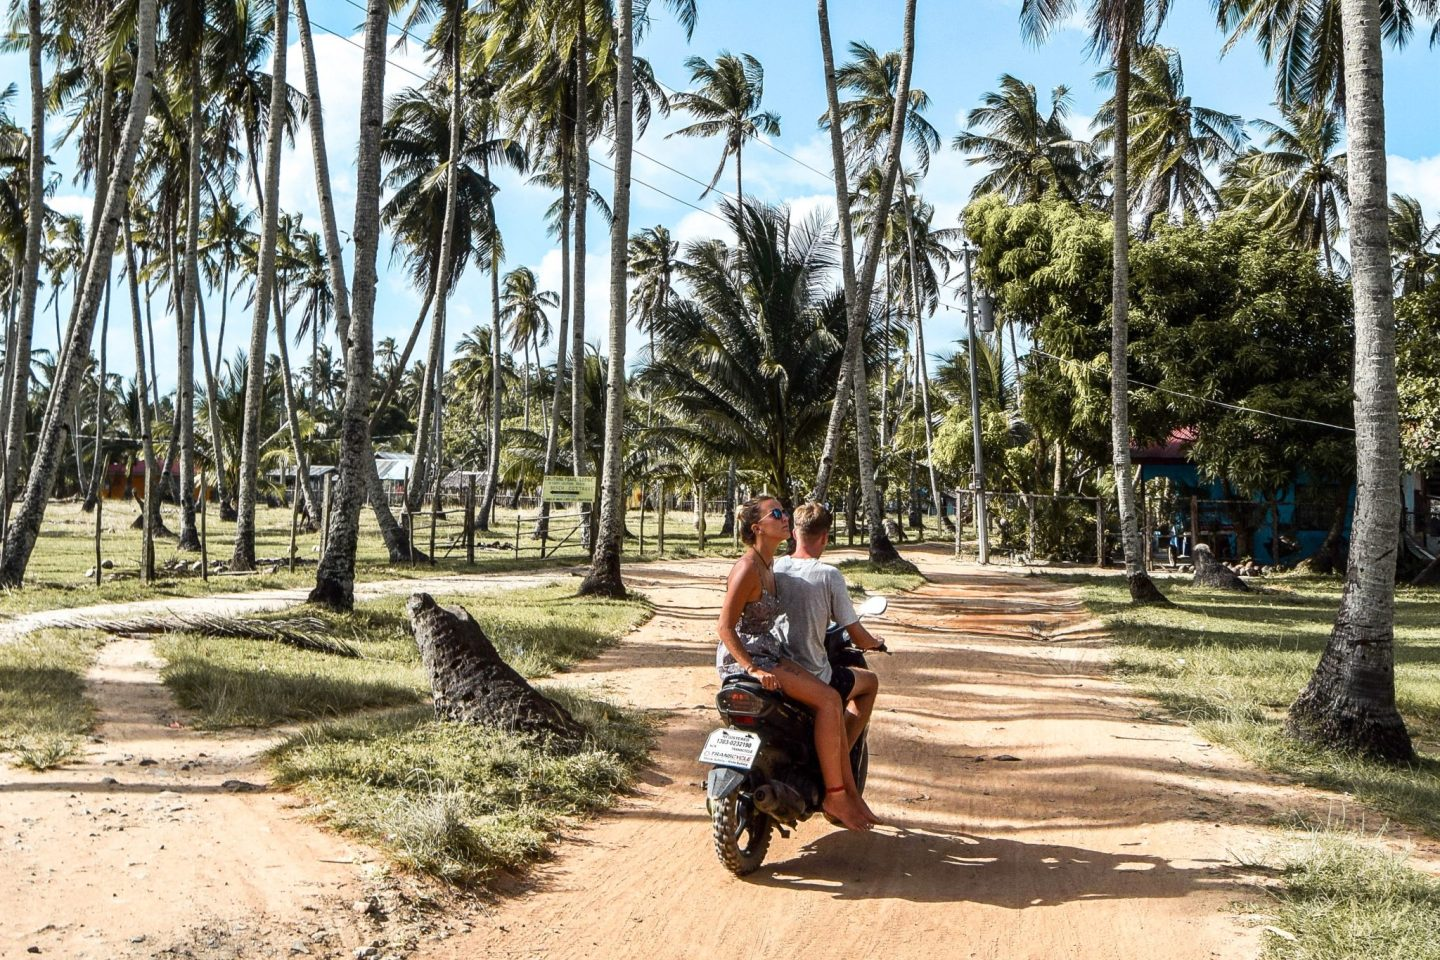 Wanderers & Warriors - Charlie & Lauren UK Travel Couple - Riding through El Nido Palawan, Philippines Tour Packages In El Nido & Things To Do In El Nido